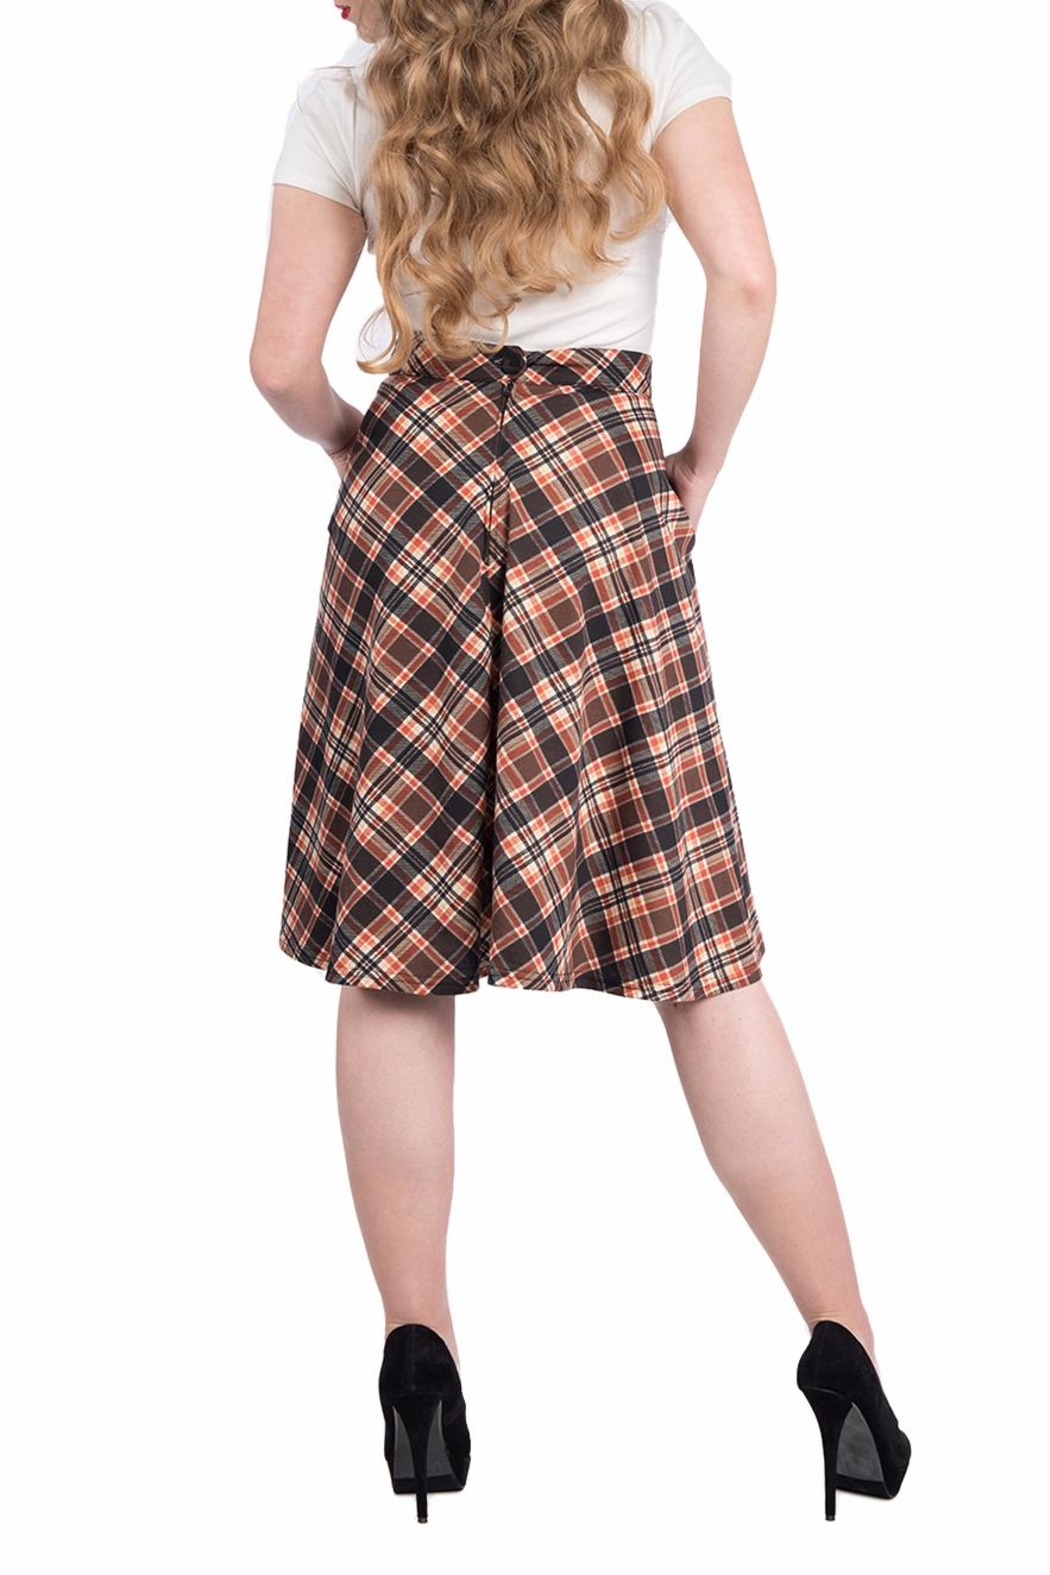 Steady Clothing Plaid Circle Skirt - Side Cropped Image